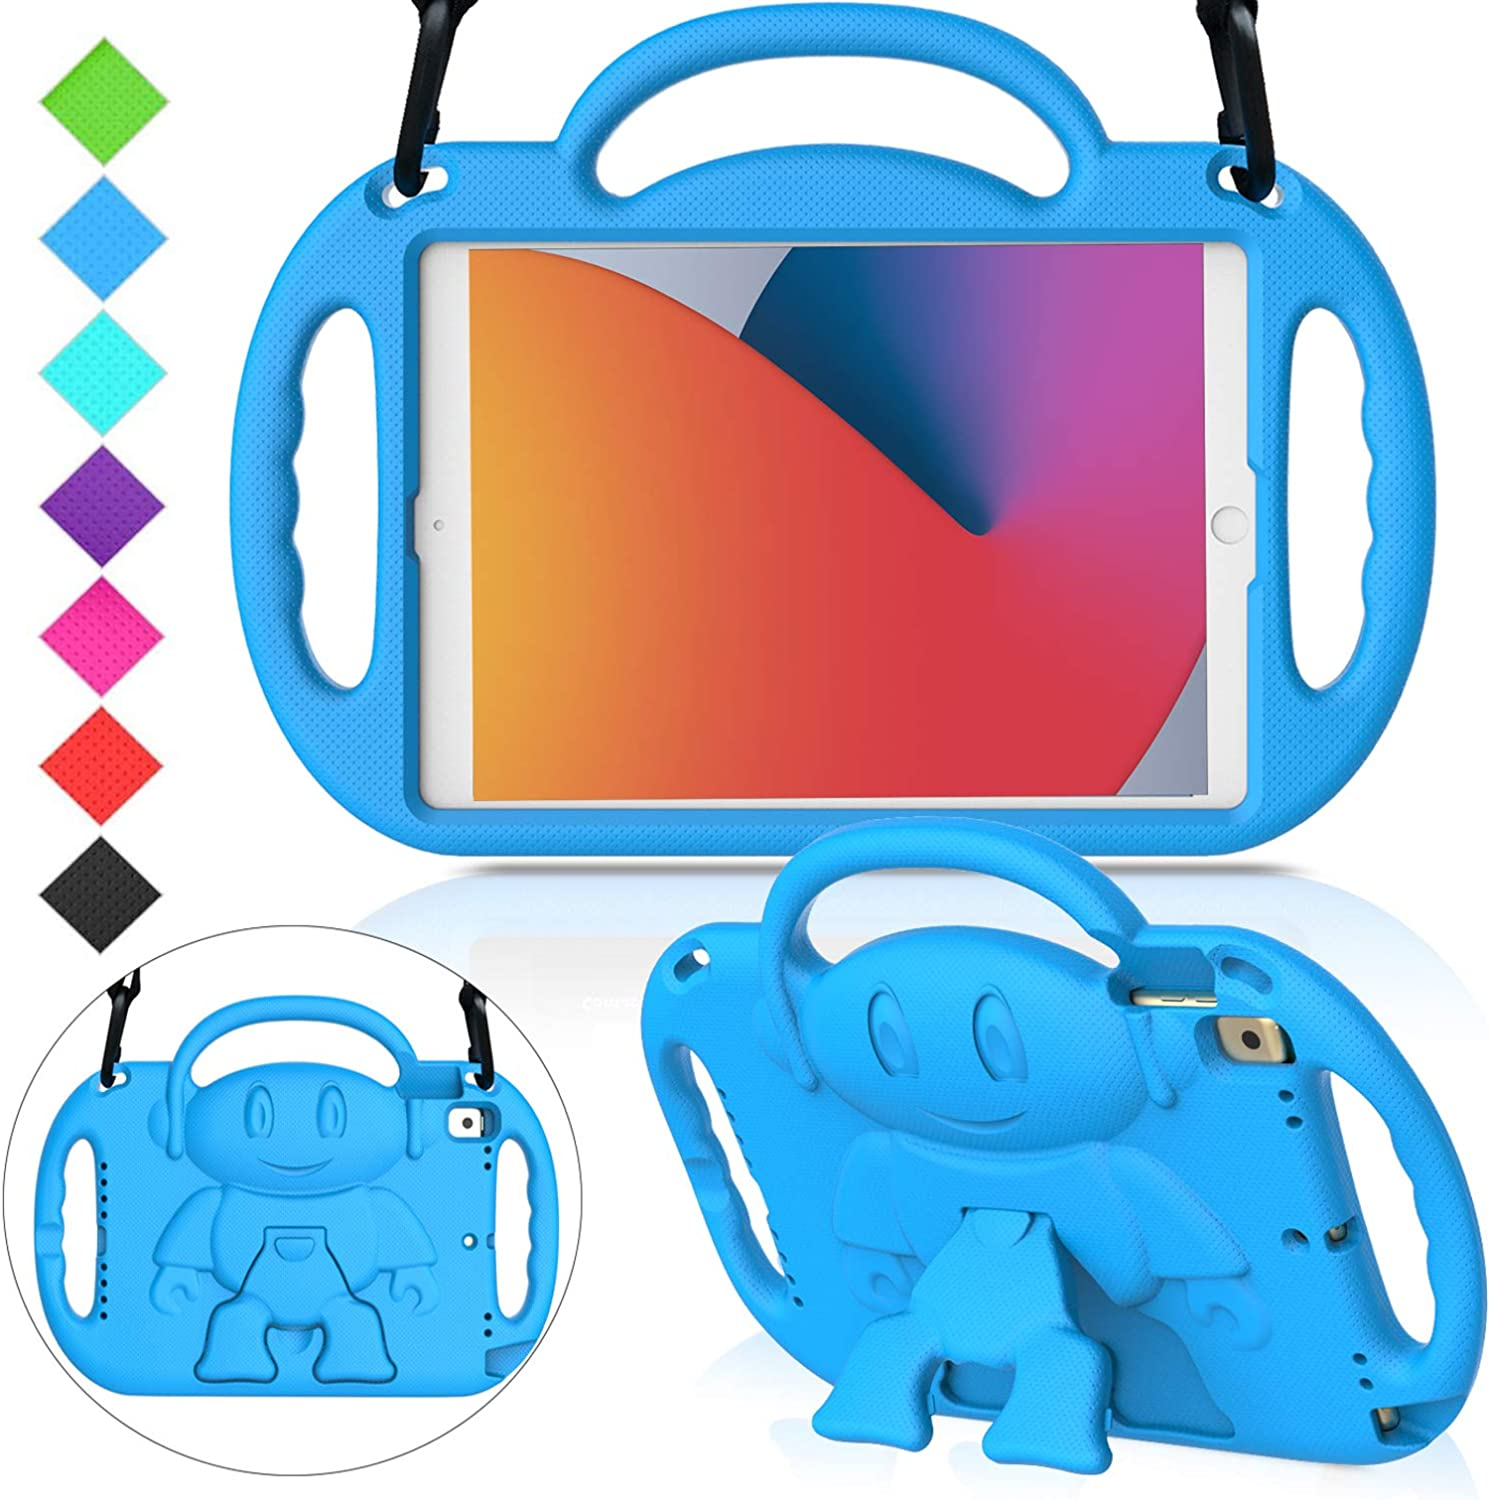 """MENZO Kids Case for New iPad 10.2"""" 8th / 7th Generation 2020 / 2019, Light Weight Shockproof Shoulder Strap Handle Stand Case for New iPad 10.2-Inch 2019 / 2020 Released (Latest Model) - Blue"""